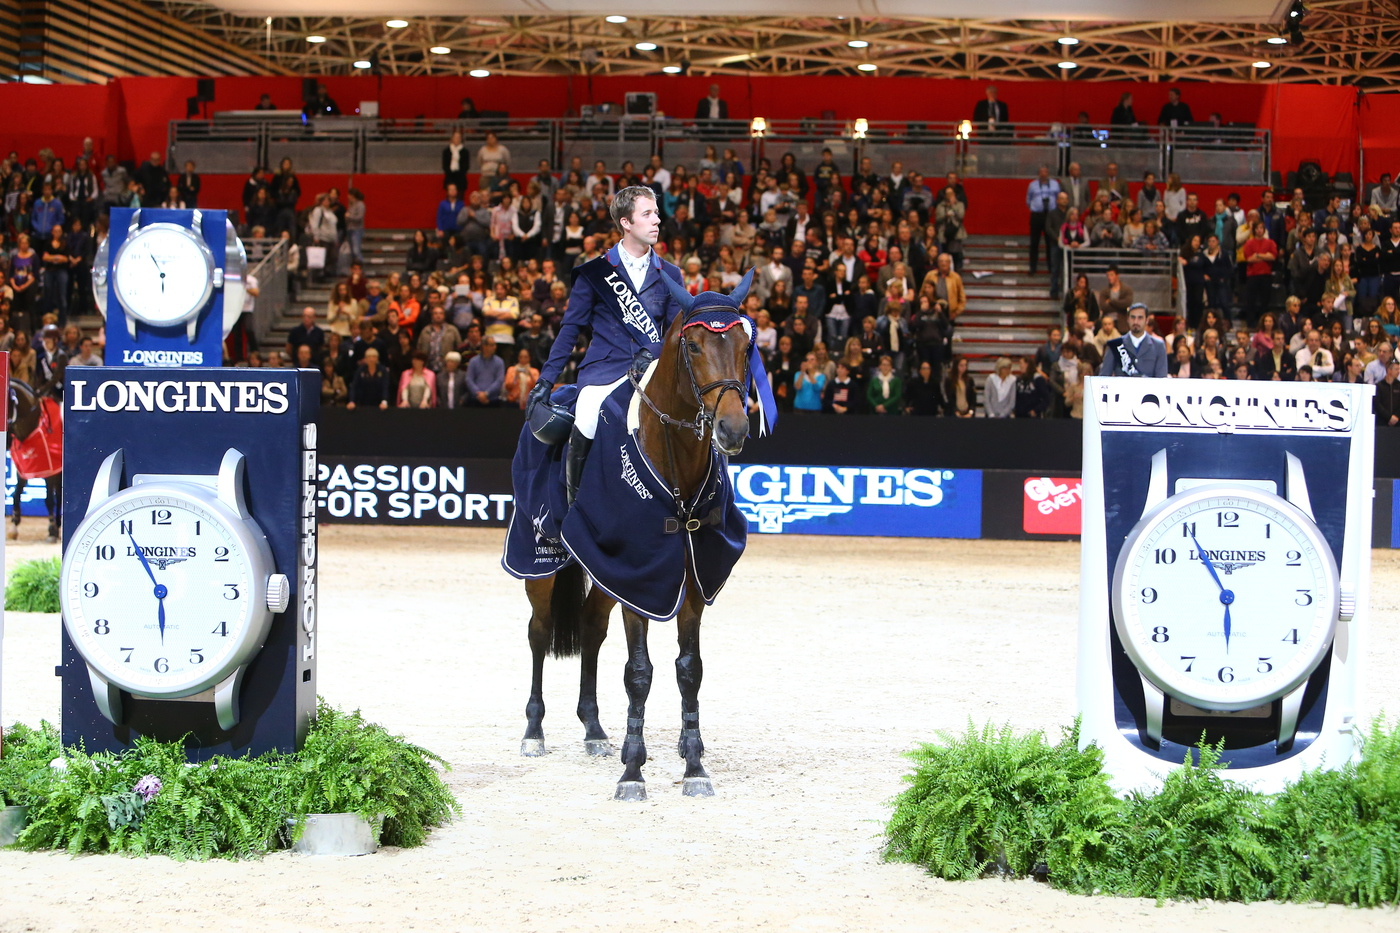 Longines Show Jumping Event: Longines  – Official Timekeeper of Equita'Lyon 5